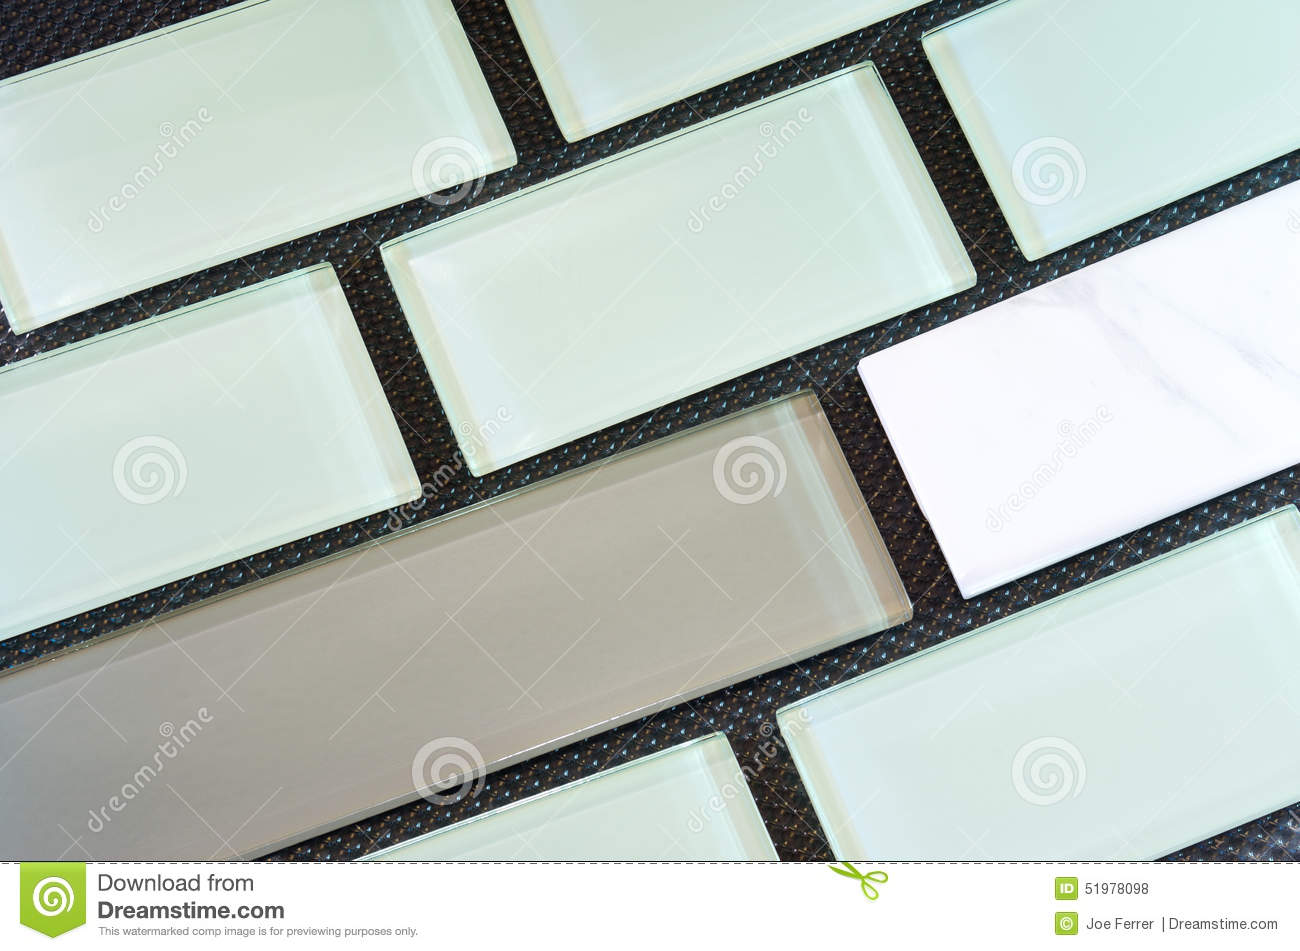 Glass And Porcelain Backsplash Tile Rows Stock Photo